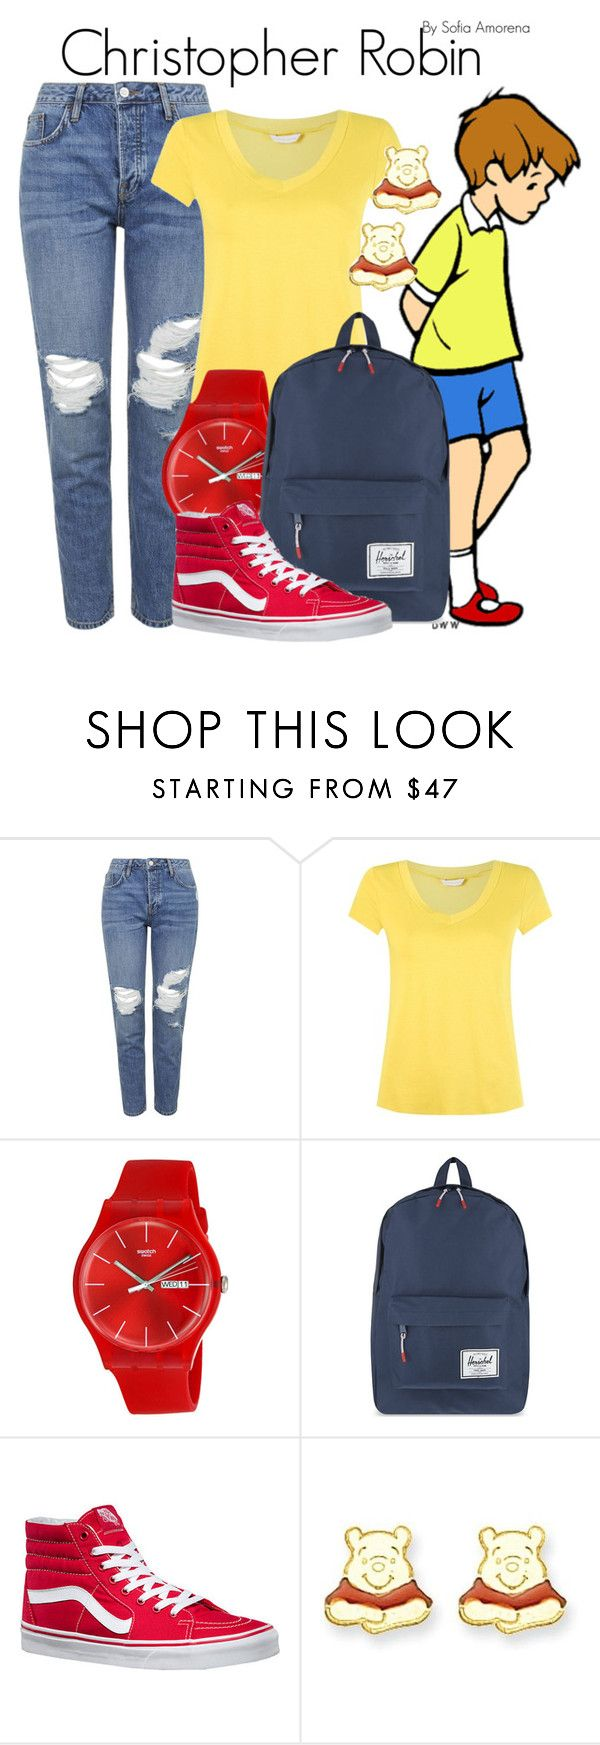 """""""Christopher Robin"""" by sofiaamorena ❤ liked on Polyvore featuring Topshop, Lygia & Nanny, Swatch, Herschel Supply Co., Vans and Disney"""